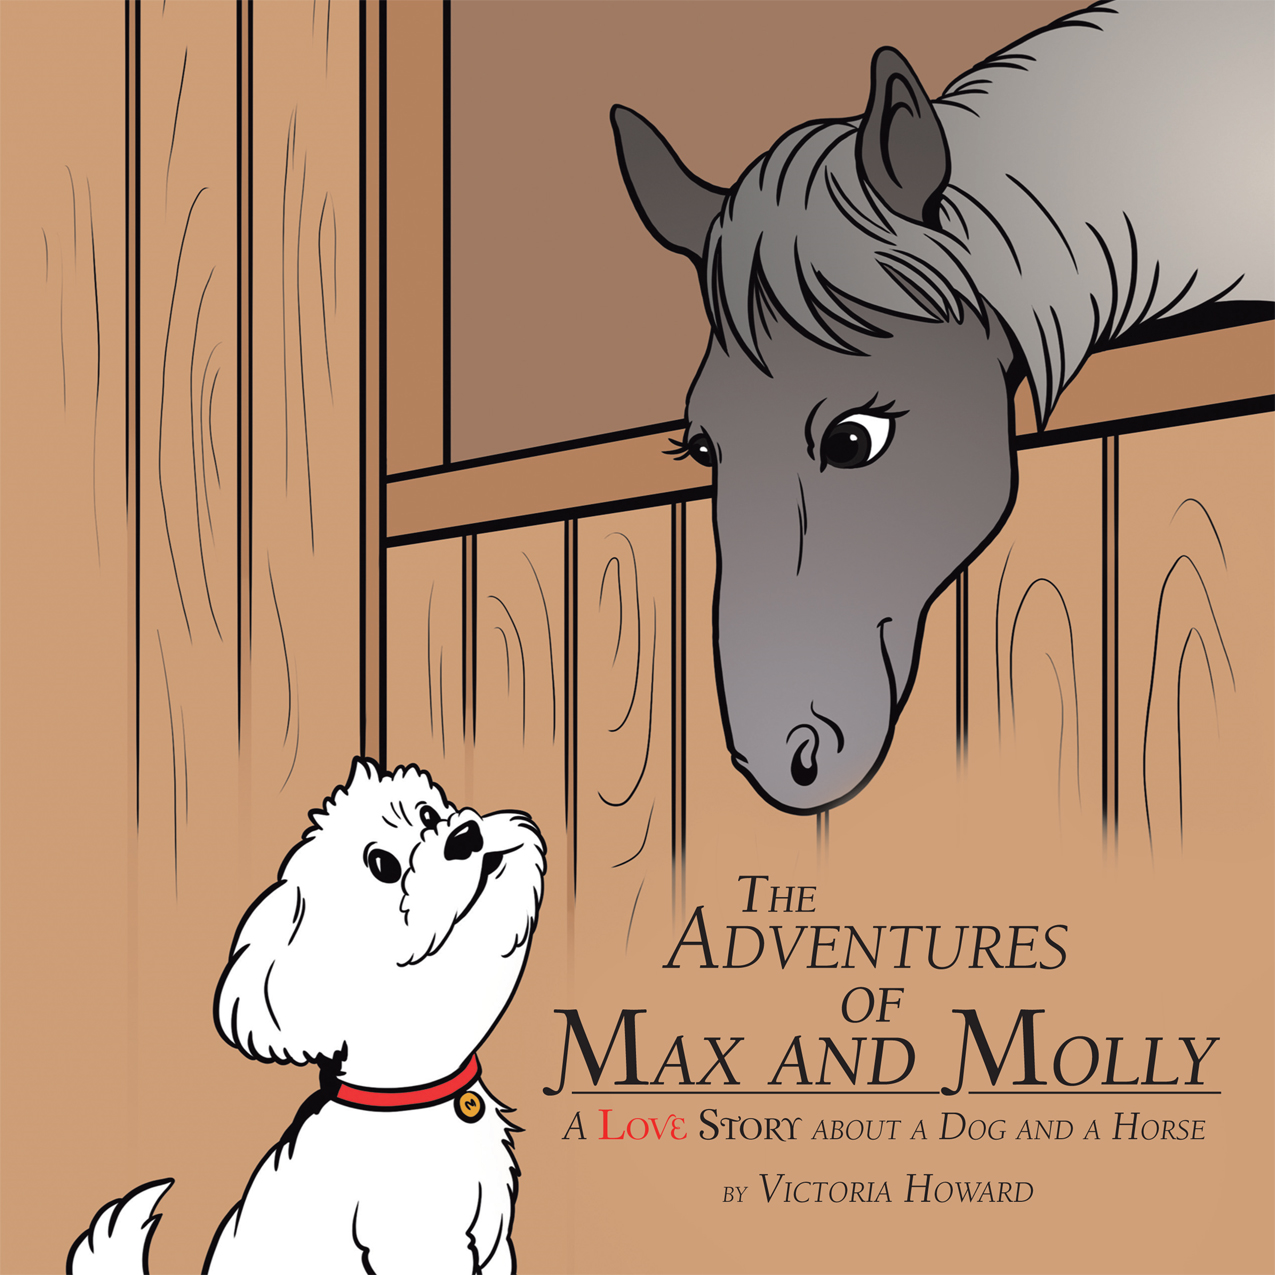 The Adventures of Max and Molly